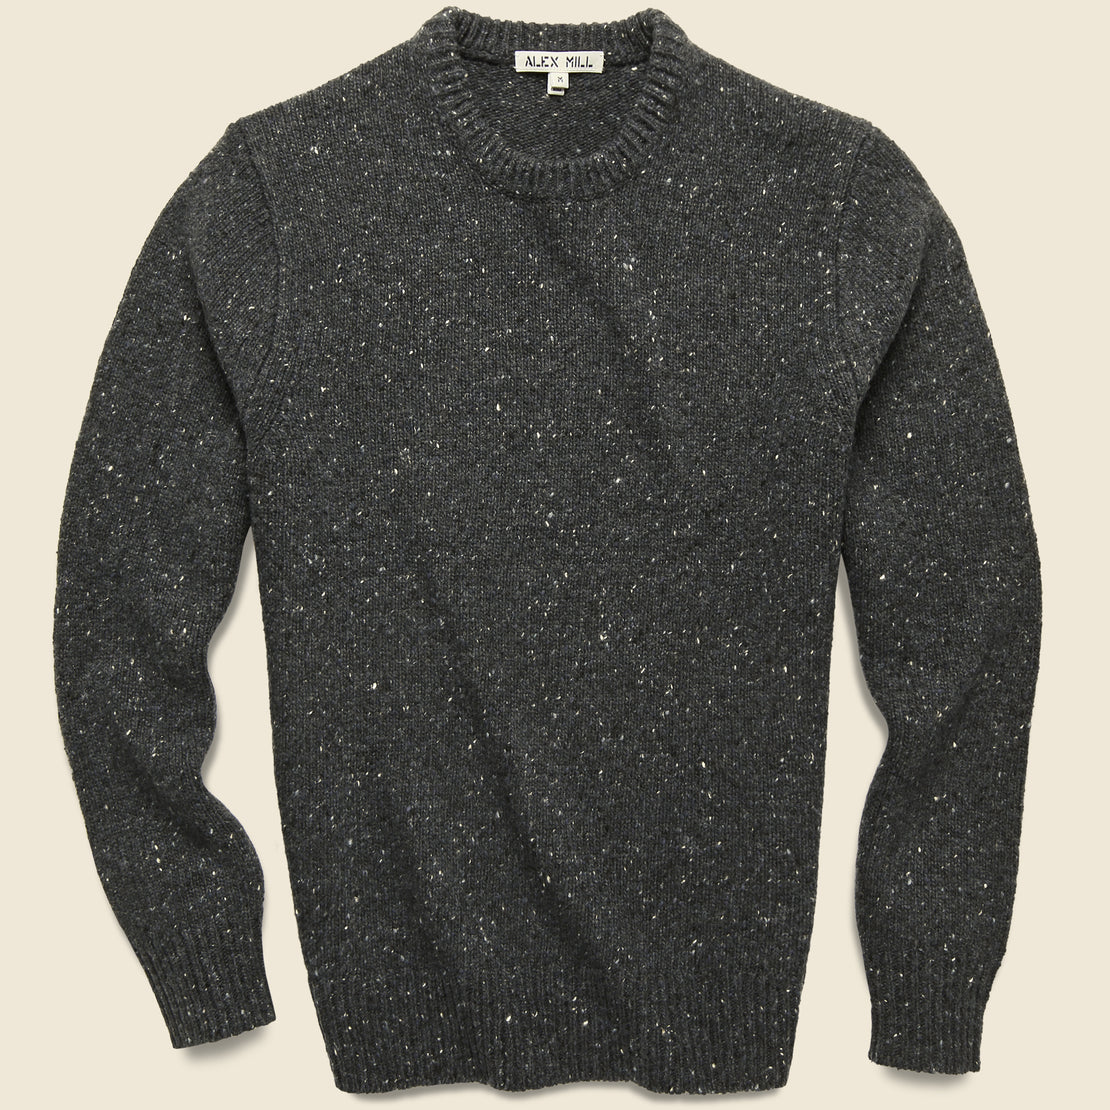 Alex Mill Donegal Wool Sweater - Charcoal